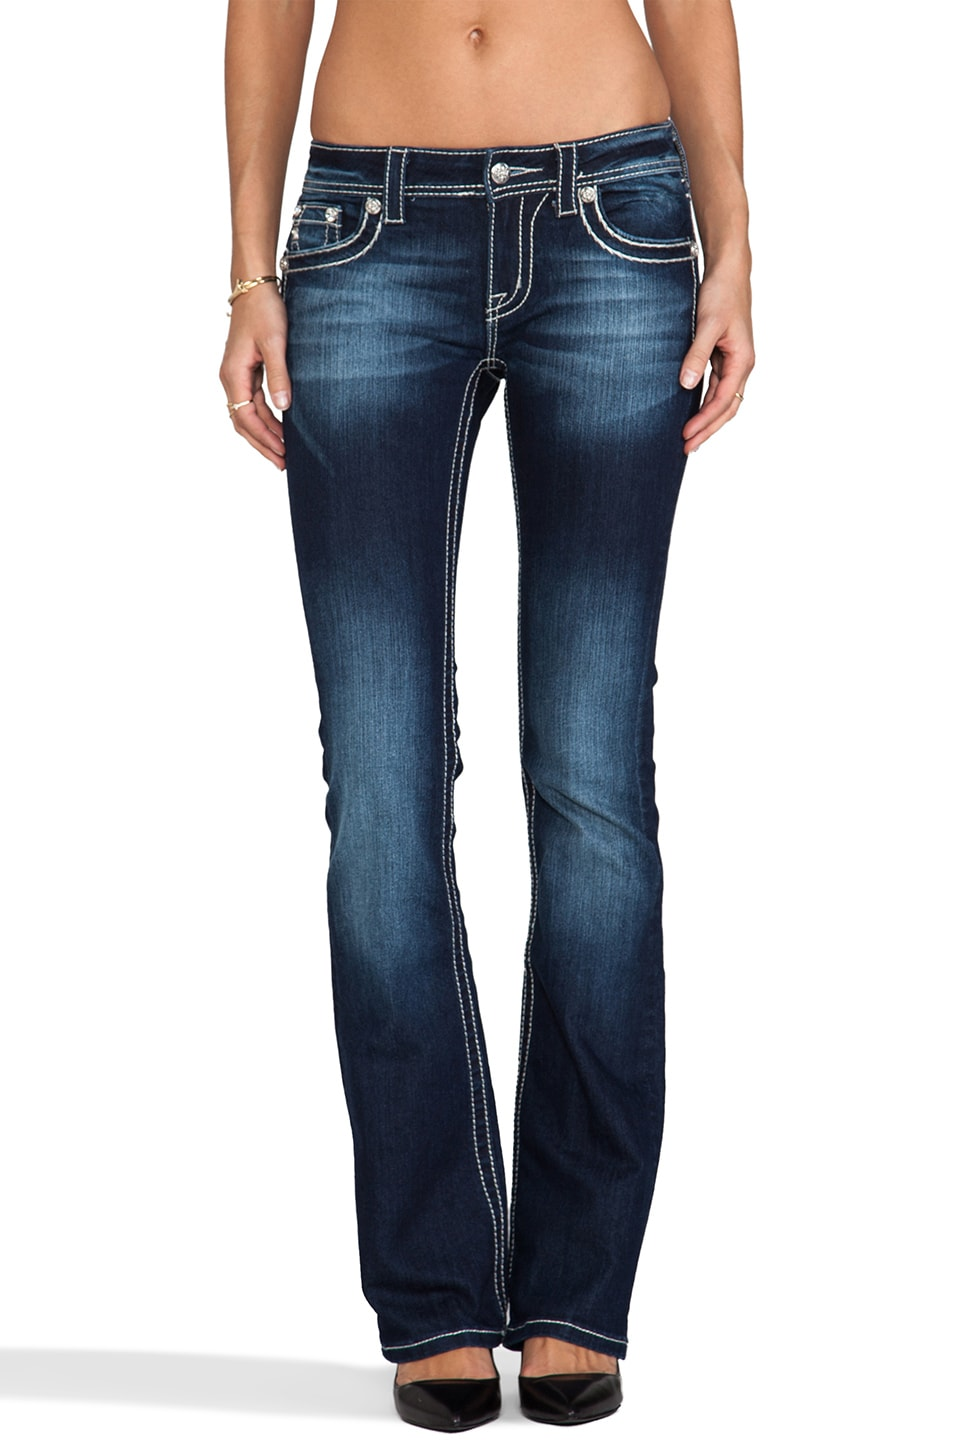 Miss Me Jeans Boot in DK 213